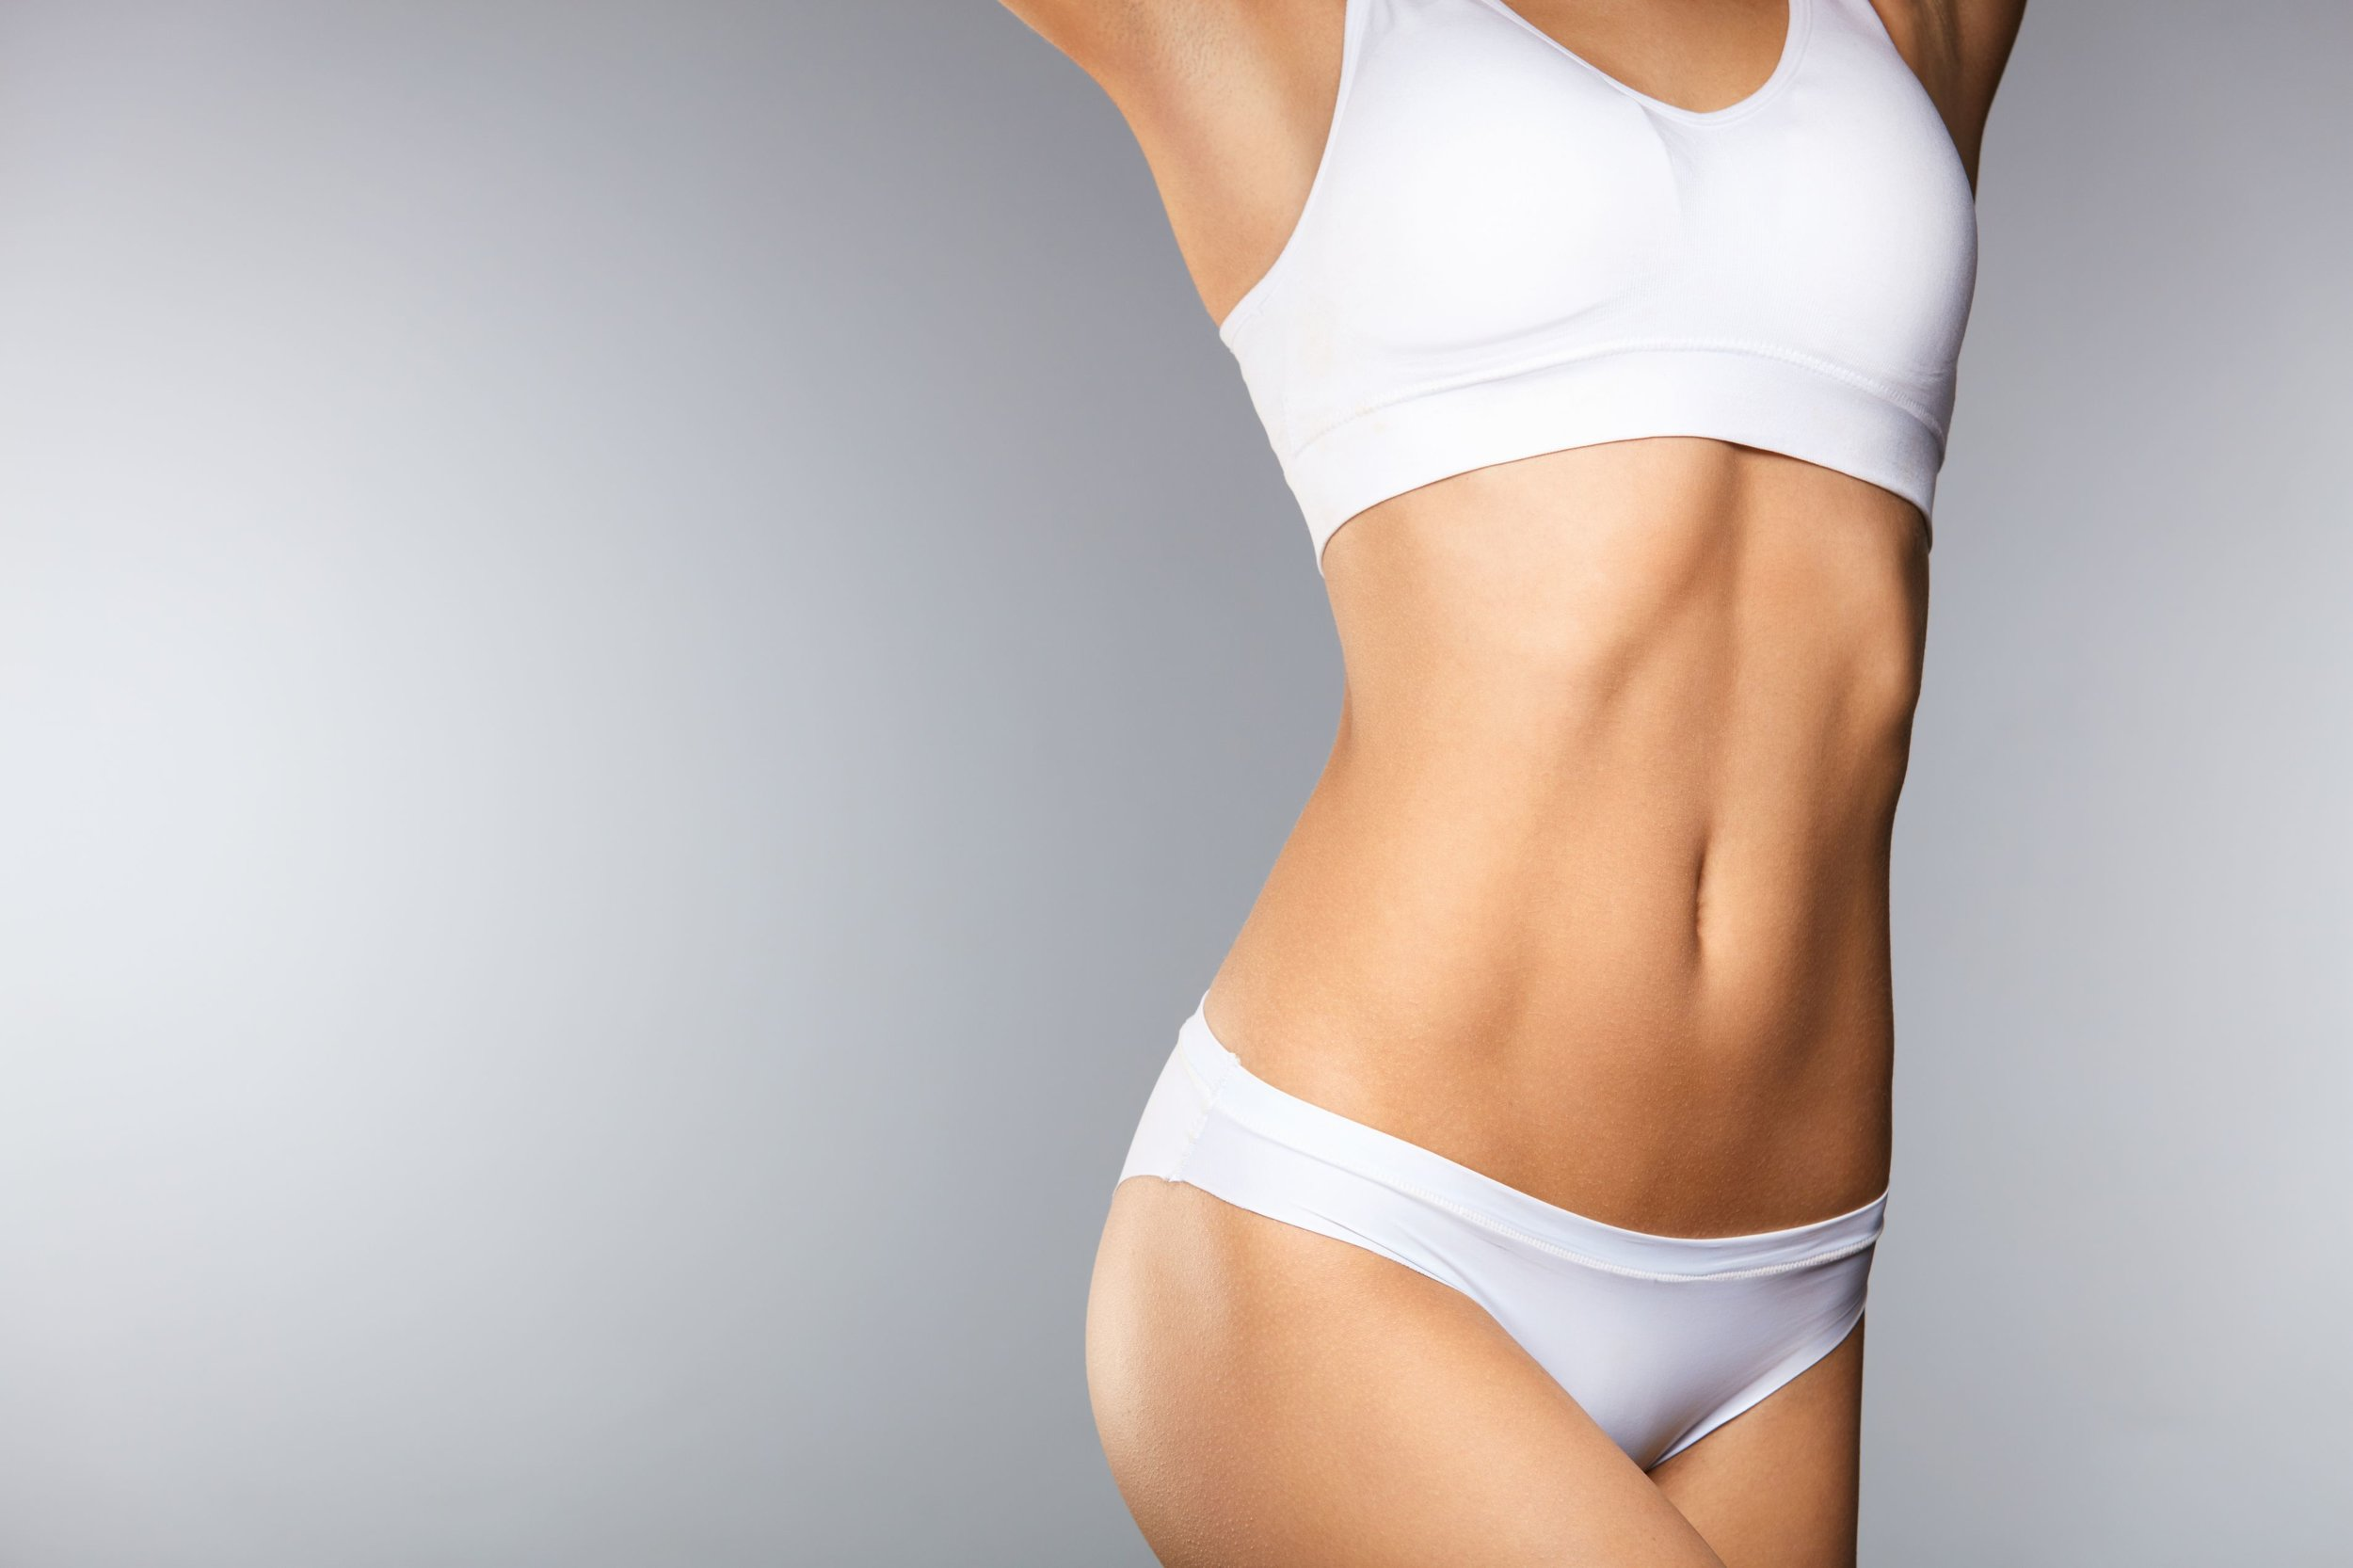 BODY - Procedures to tone areas such as abdomen, arms & thighs; and remove scars & moles.